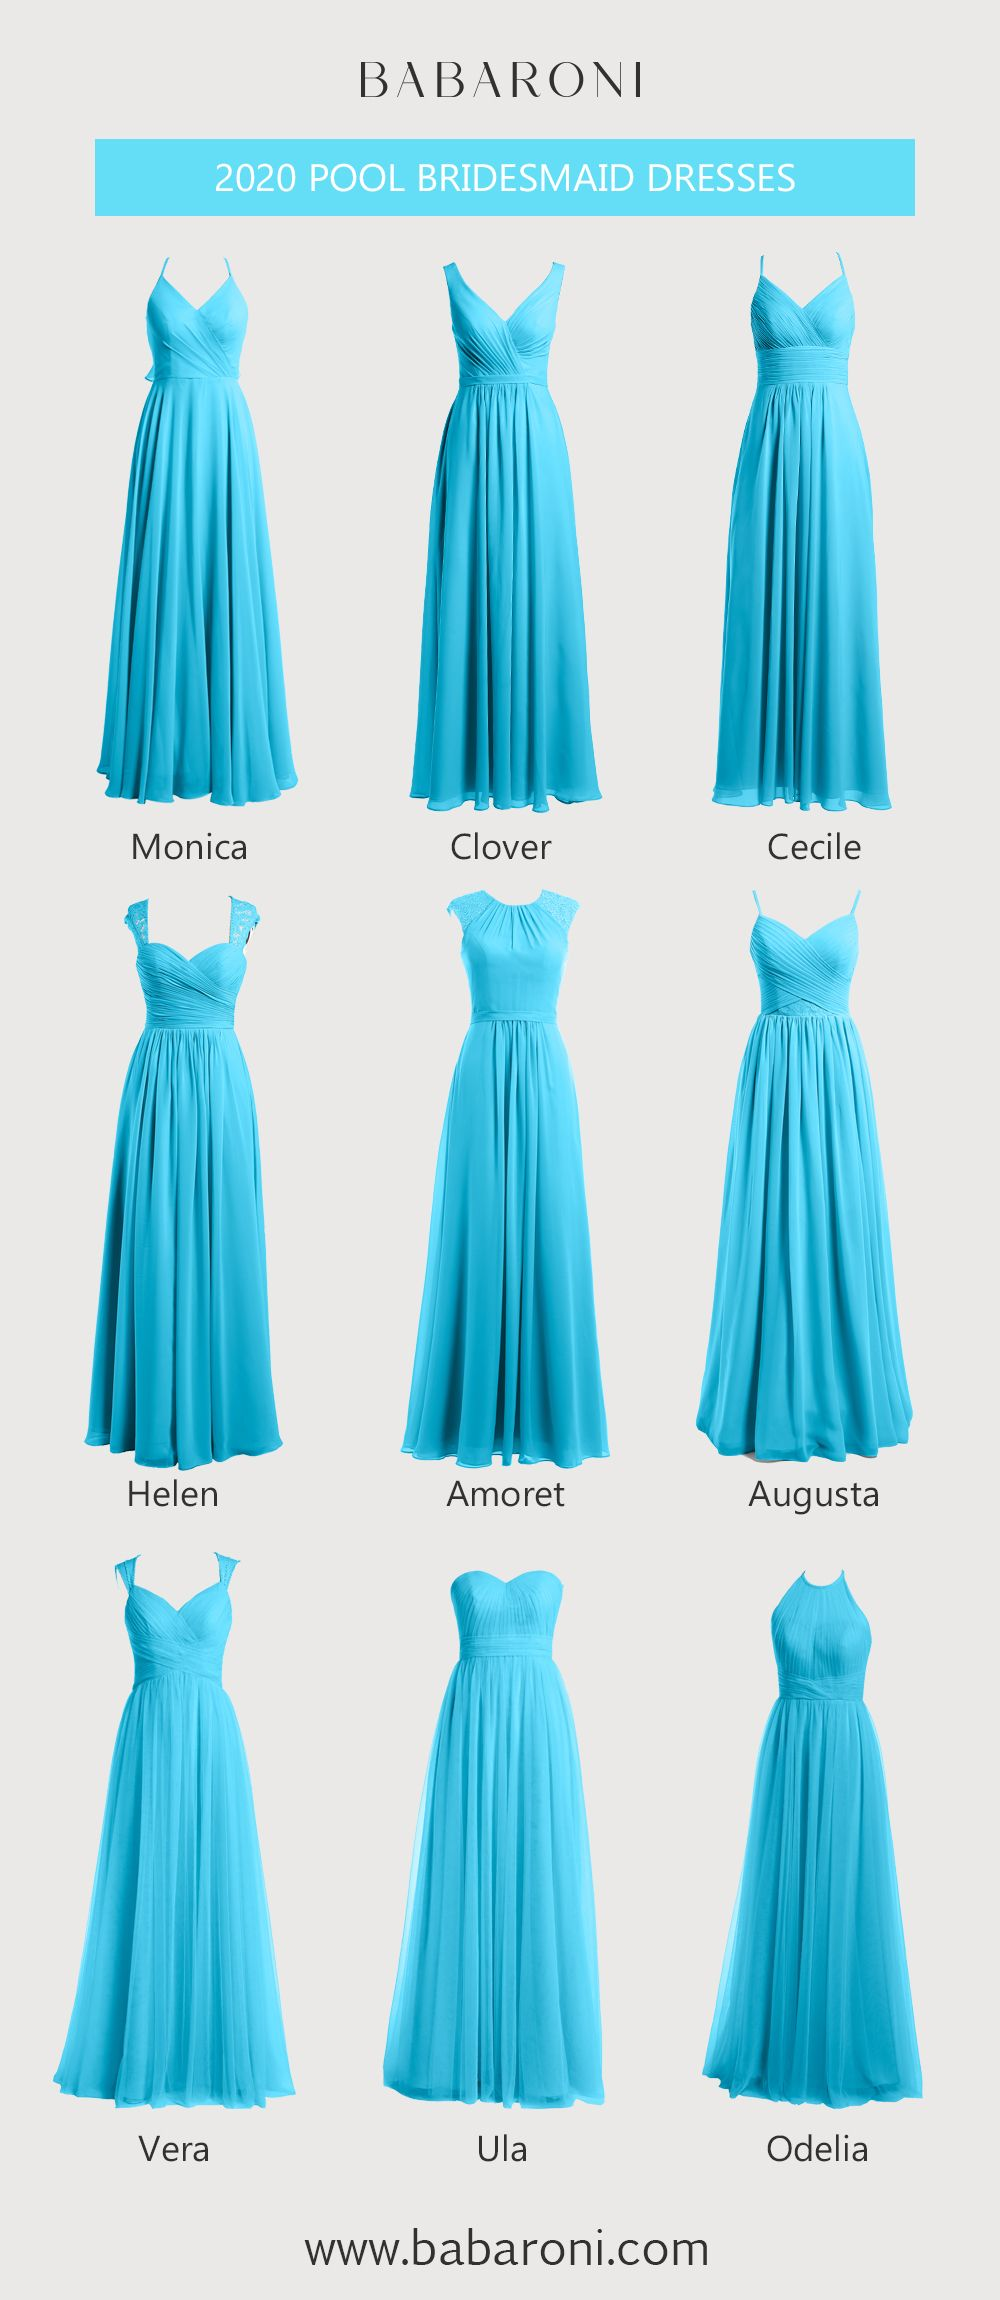 SKU: Tons available Price: Under $99.00 Color: pool Size: All Sizes Available  #babaroni #bigsale #christmas #christmassale #christmasdeals #wedding #wedding #weddings #weddings #weddingdress #weddingdresses #bridalgown #bridesmaid #bridesmaiddress #bridesmaidgown #bridesmaidgowns #bridesmaiddrsses #bridesofhonor #chiffondress #longdress #dreamdress #longgown #pooldress #poolcolordress